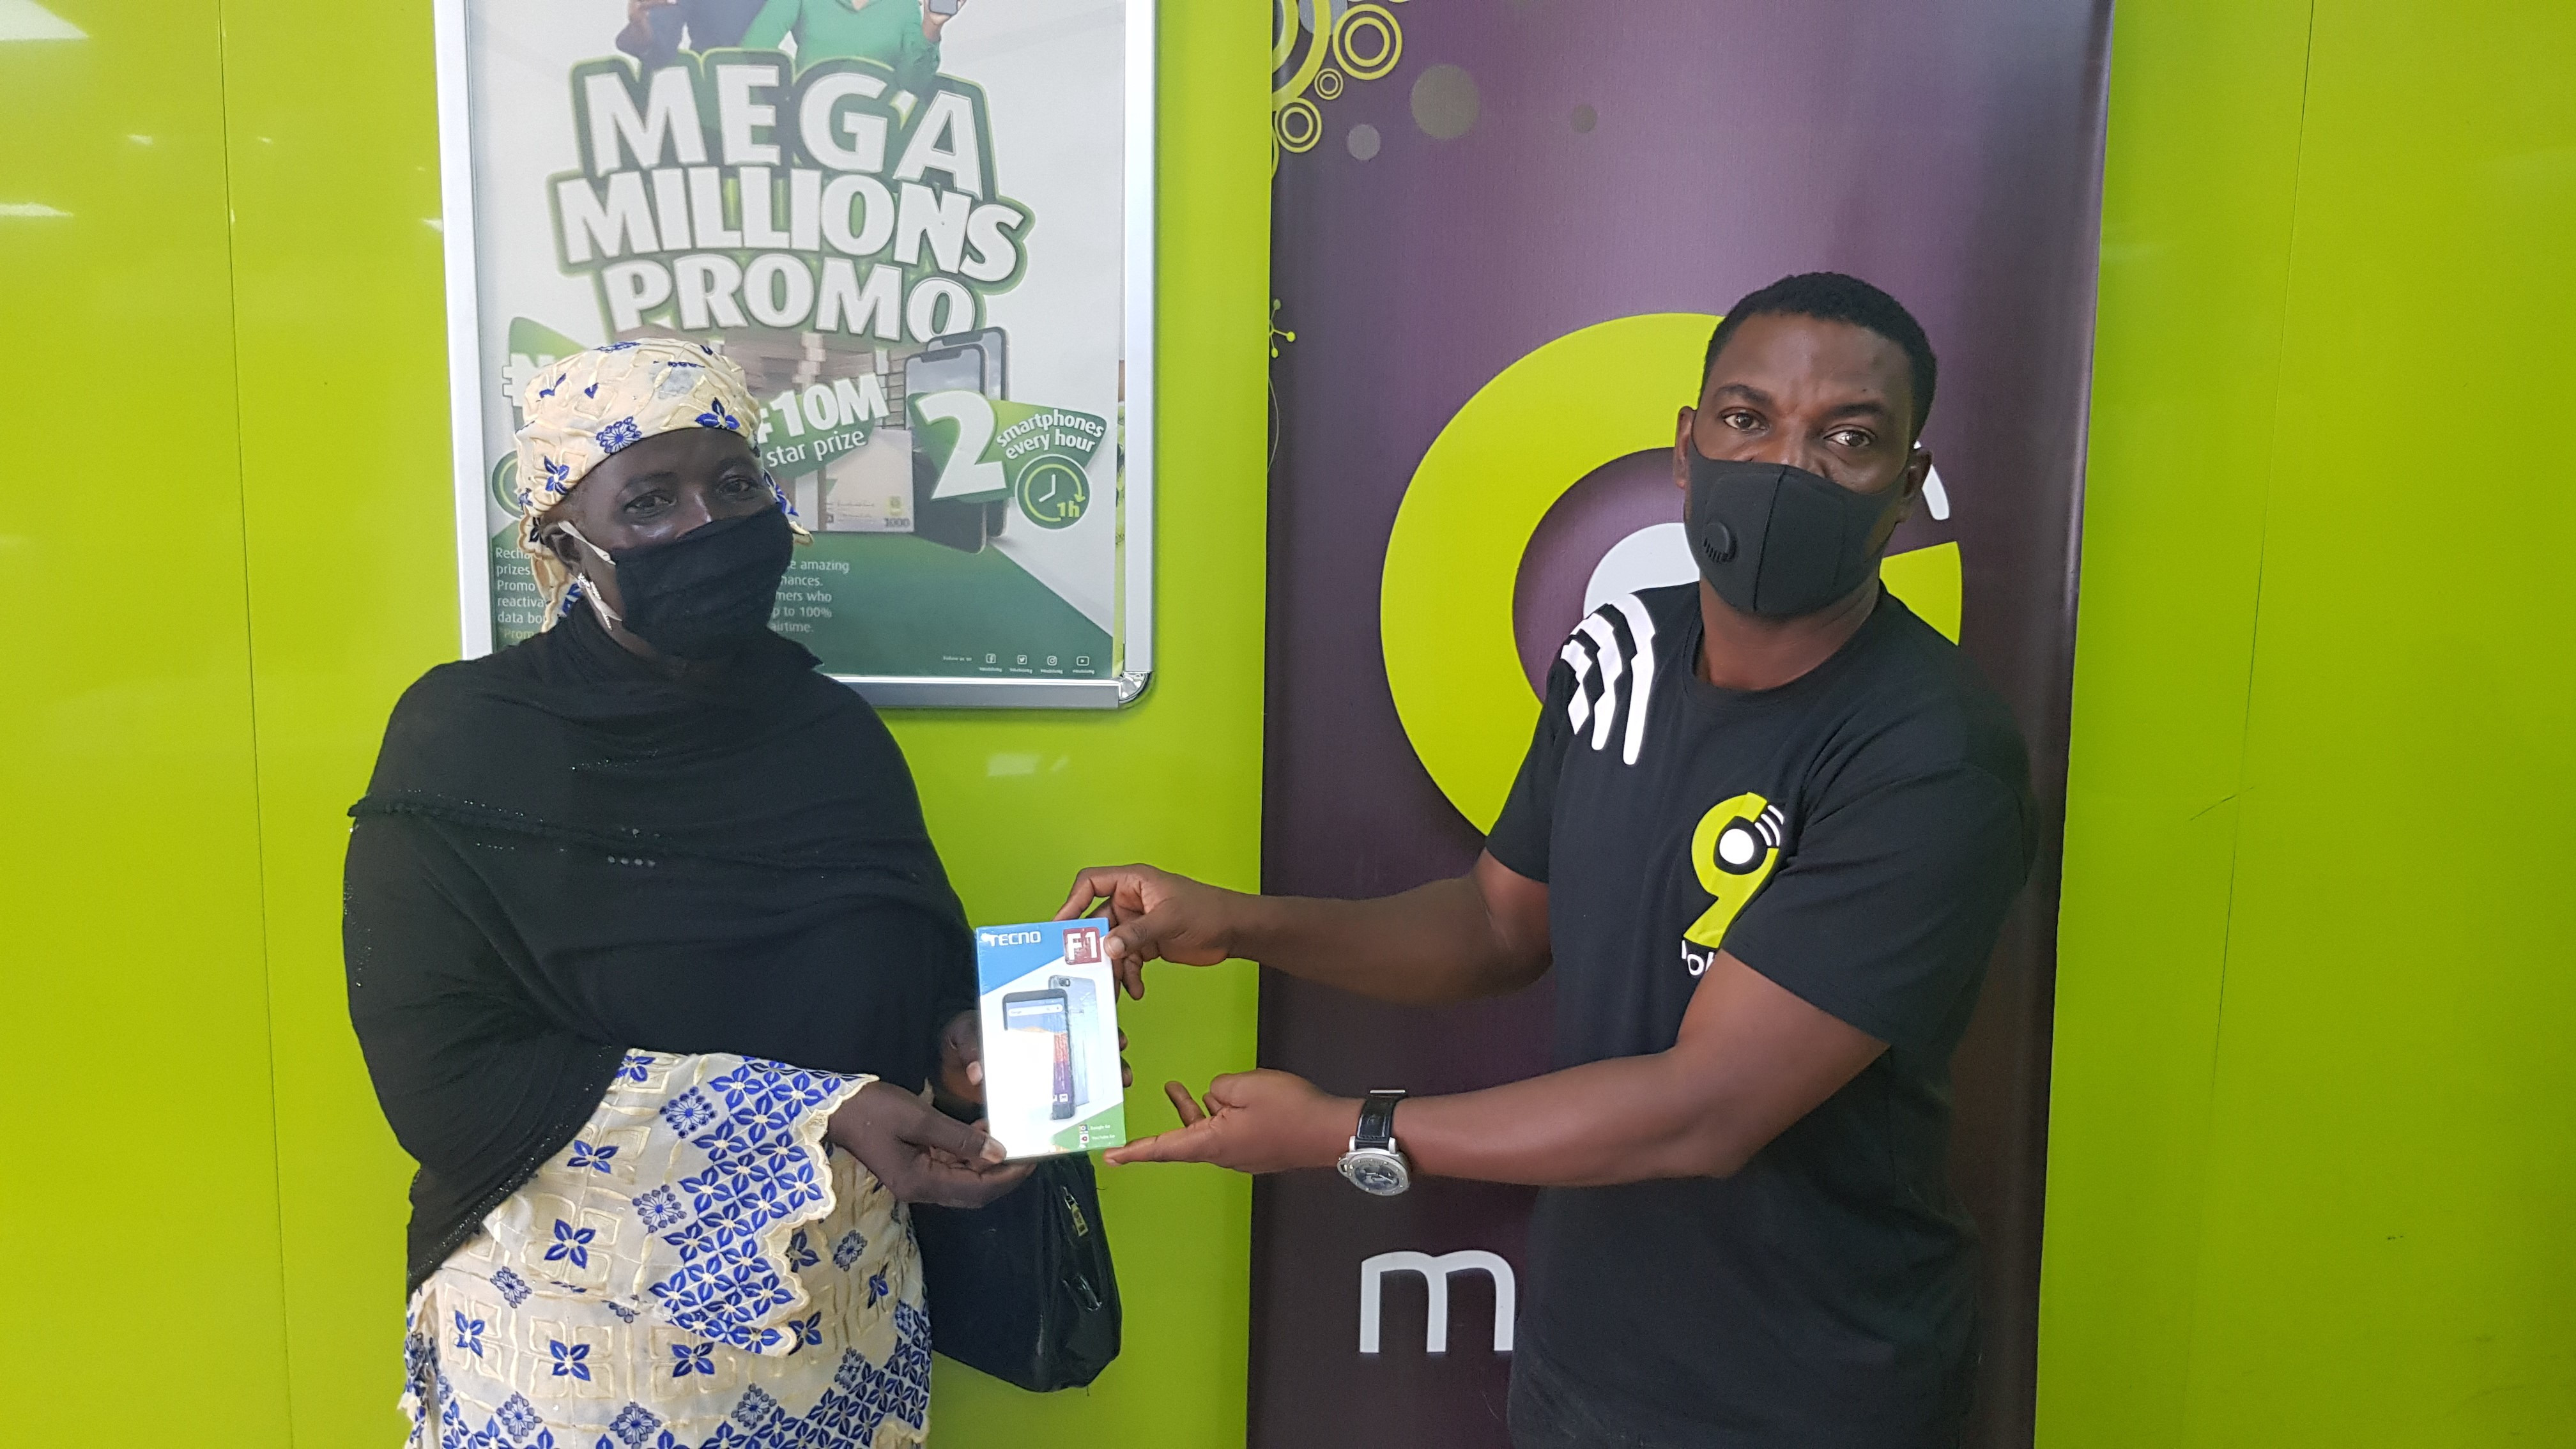 9mobile uplifts small business owners with Mega Millions Promo